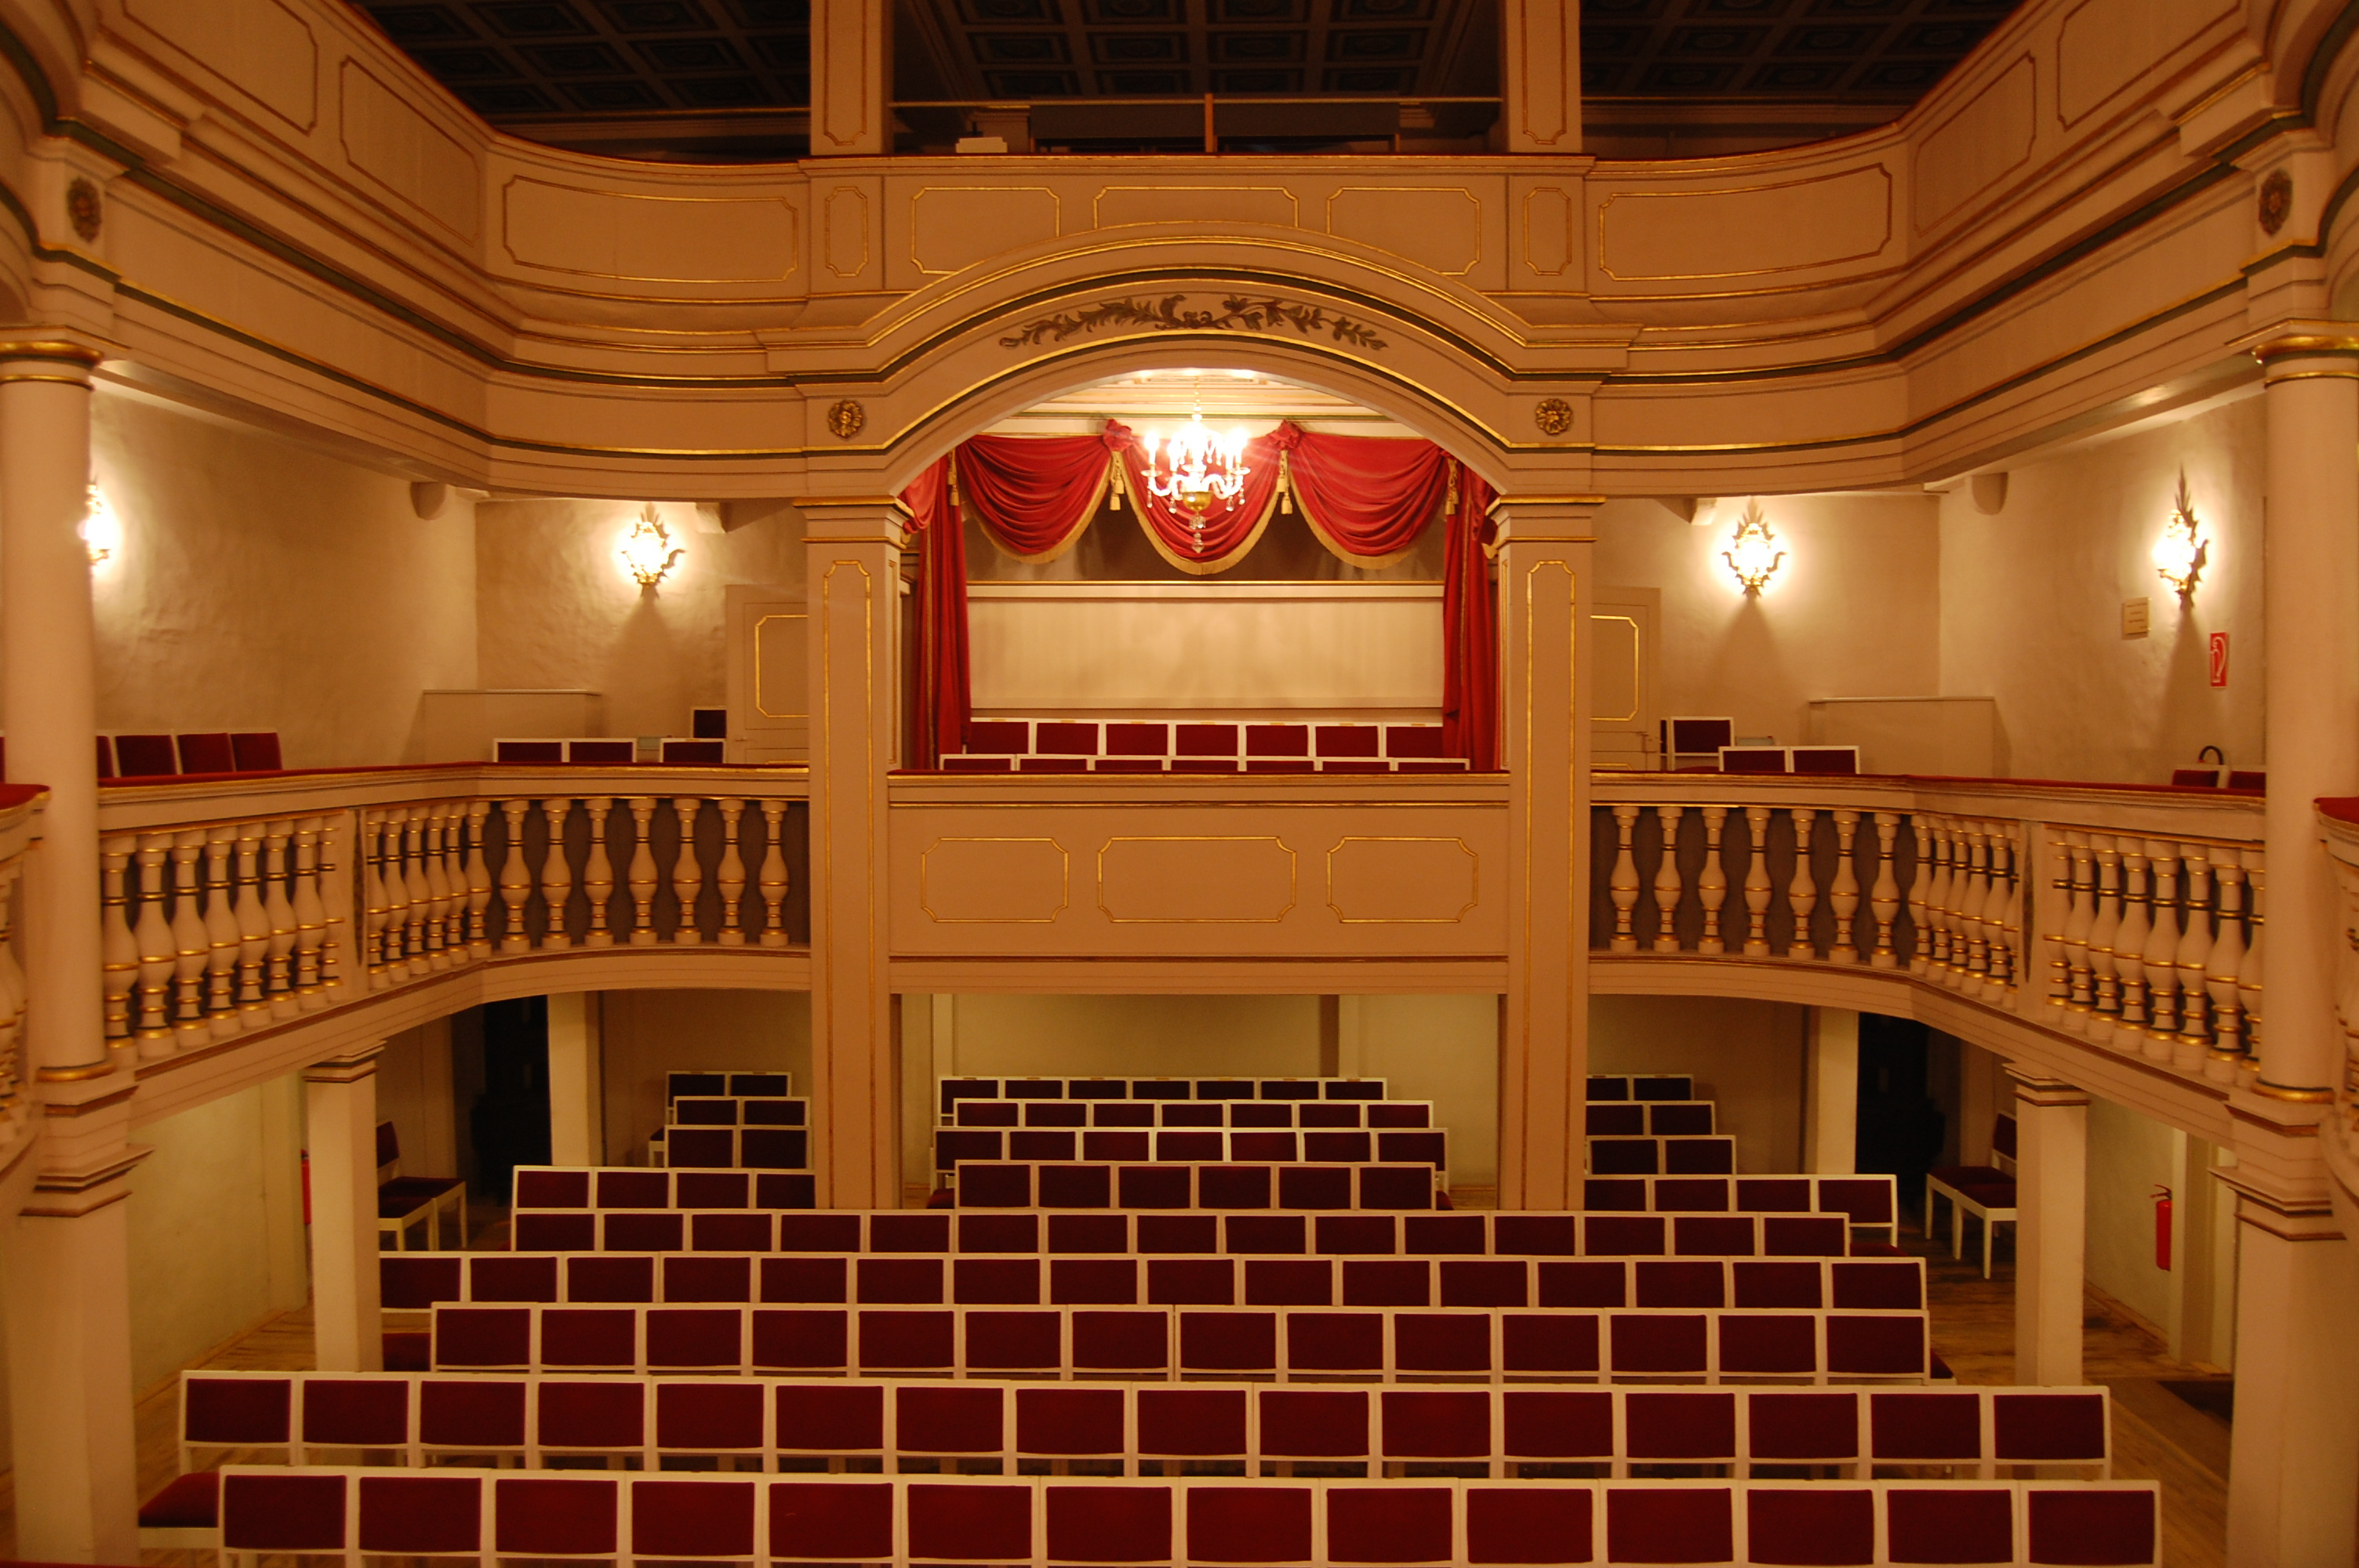 File:Ekhof-Theater Zuschauerraum.JPG - Wikimedia Commons